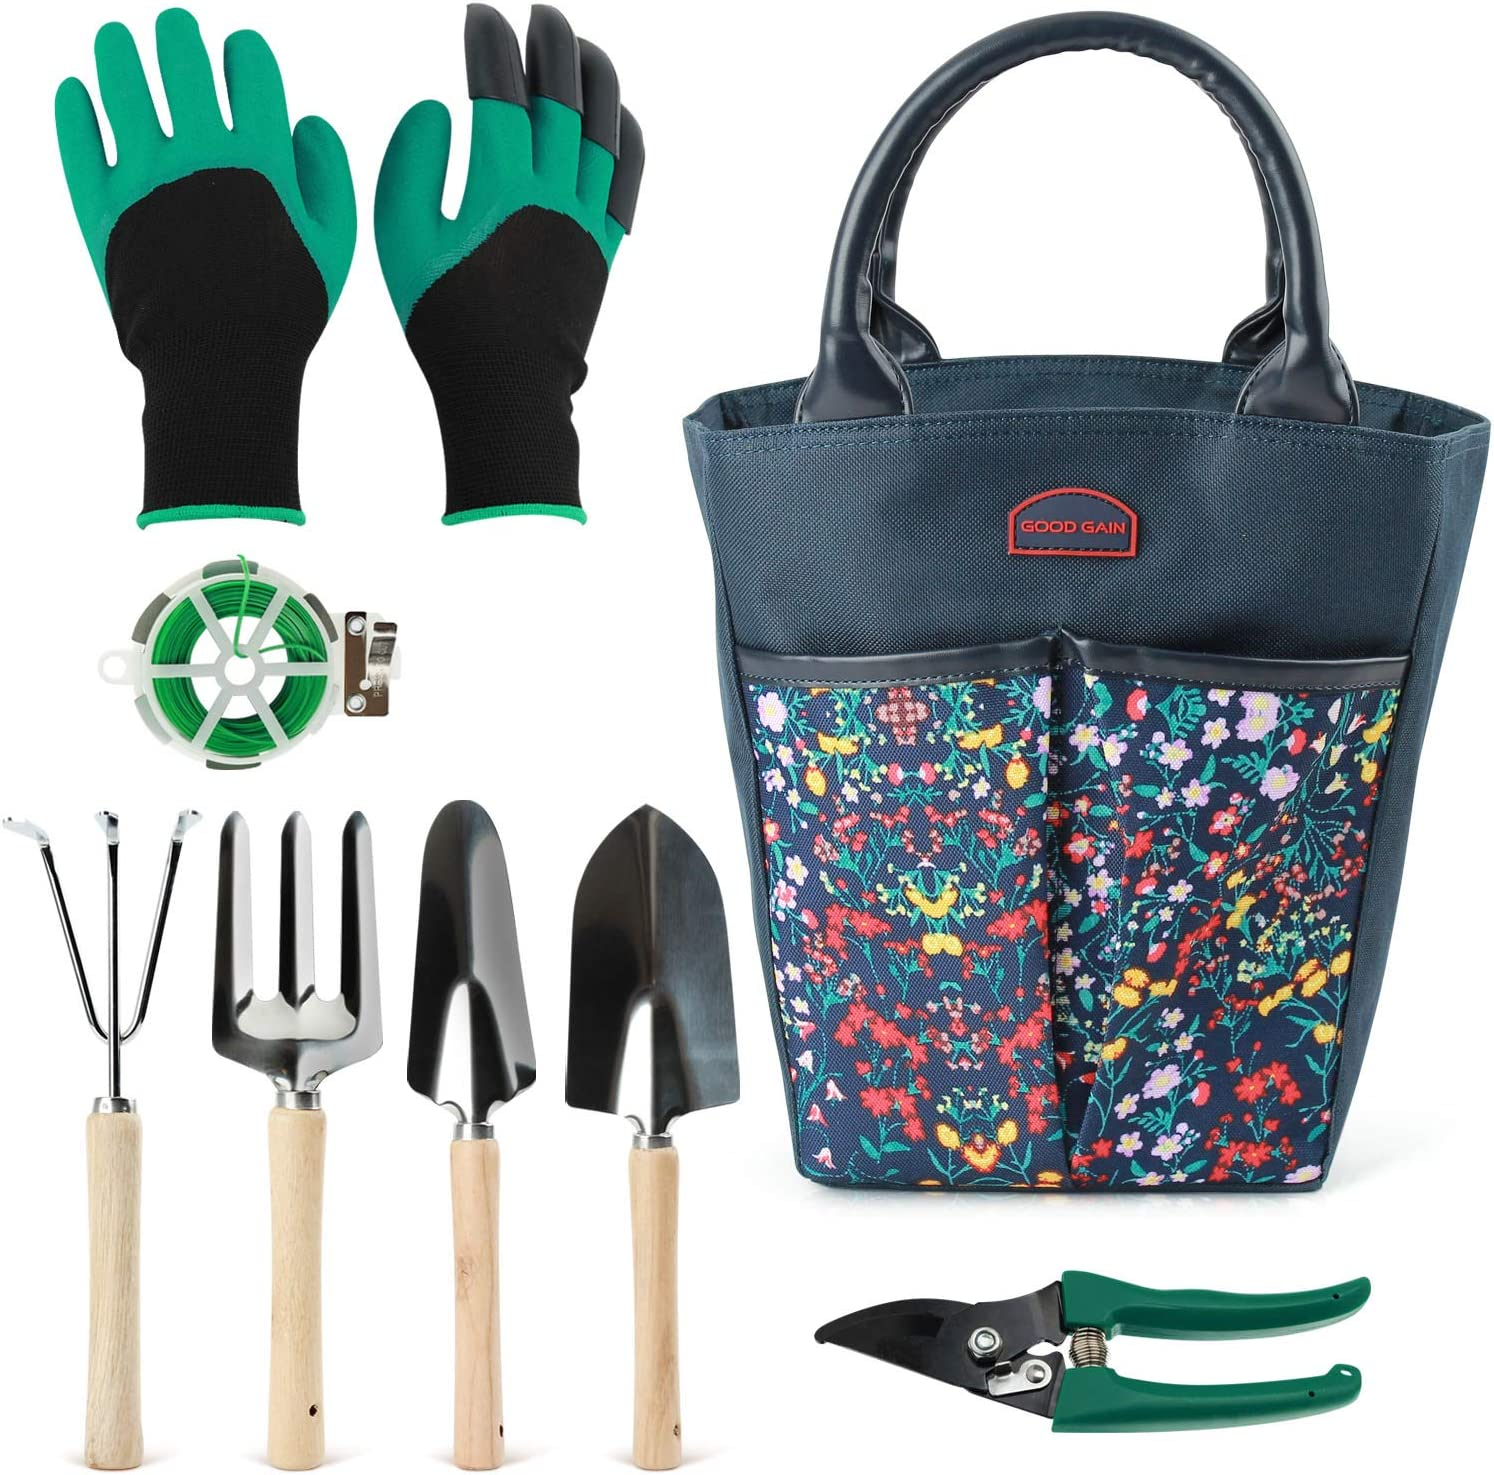 Good GAIN Garden Tools Set, 9 Piece Gardening Organizer Kit with Storage Tote Bag, Heavy Duty Planting Tools, Digger Gloves, Binding Wire and Pruner, Great Gift for Women & Men Mothers' Day. Blue